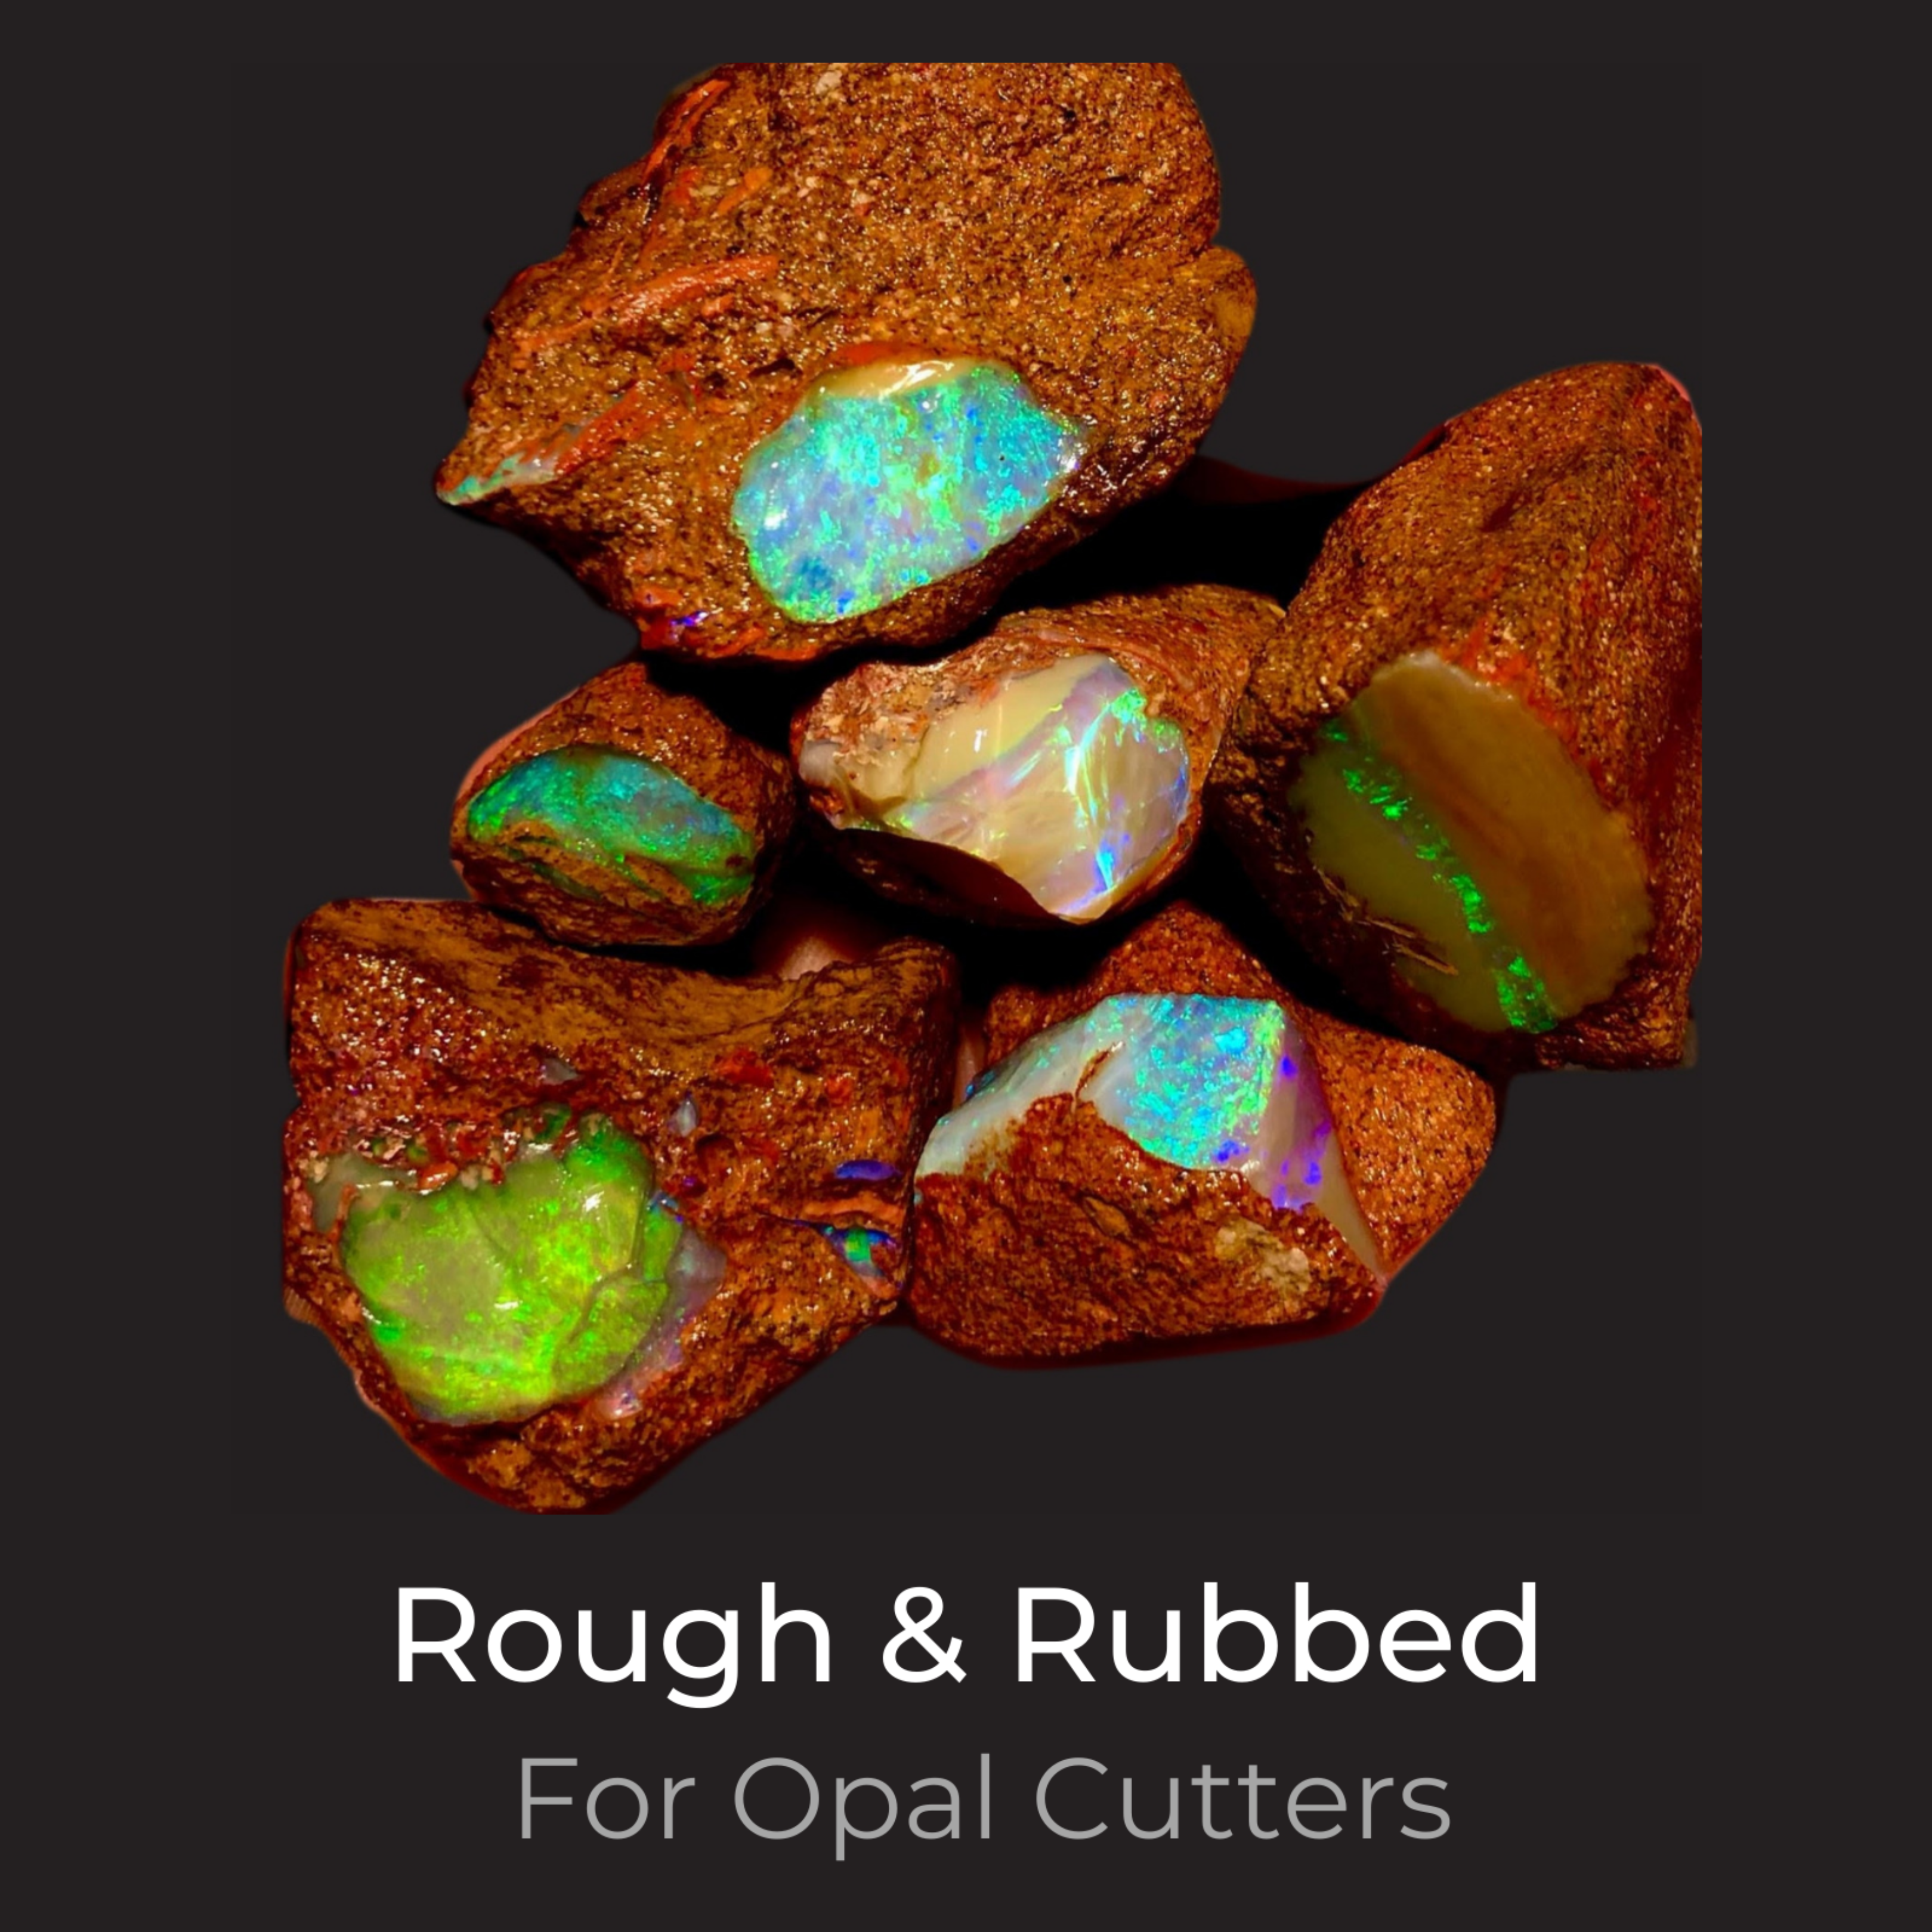 • Rough & Rubbed Opals